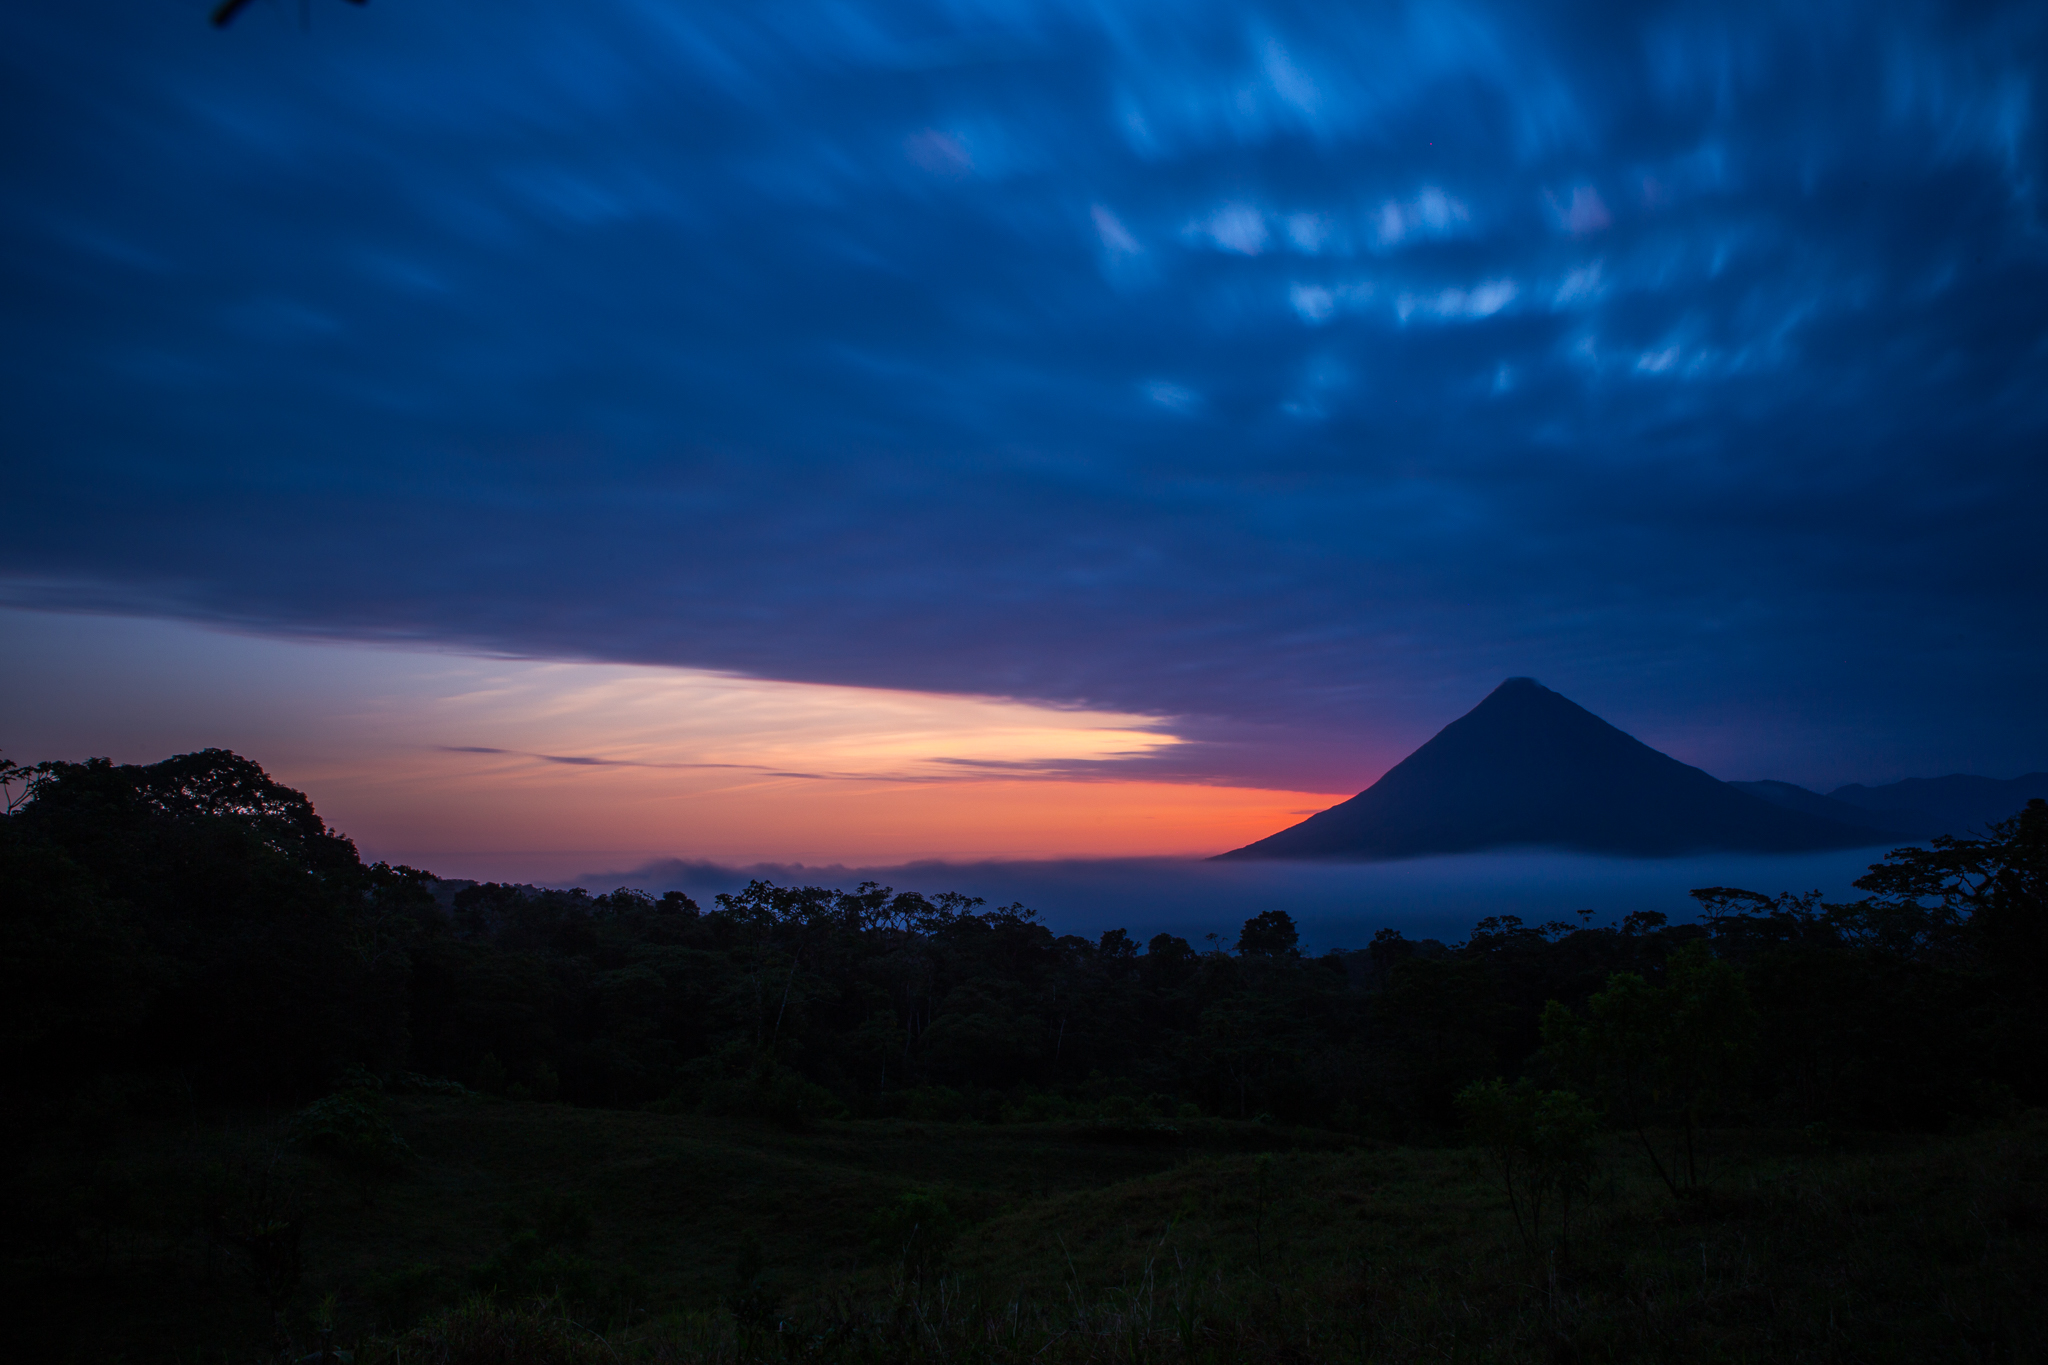 Another long exposure image, you can see the movement in the clouds. I liked the fog at the base of the volcano as well.